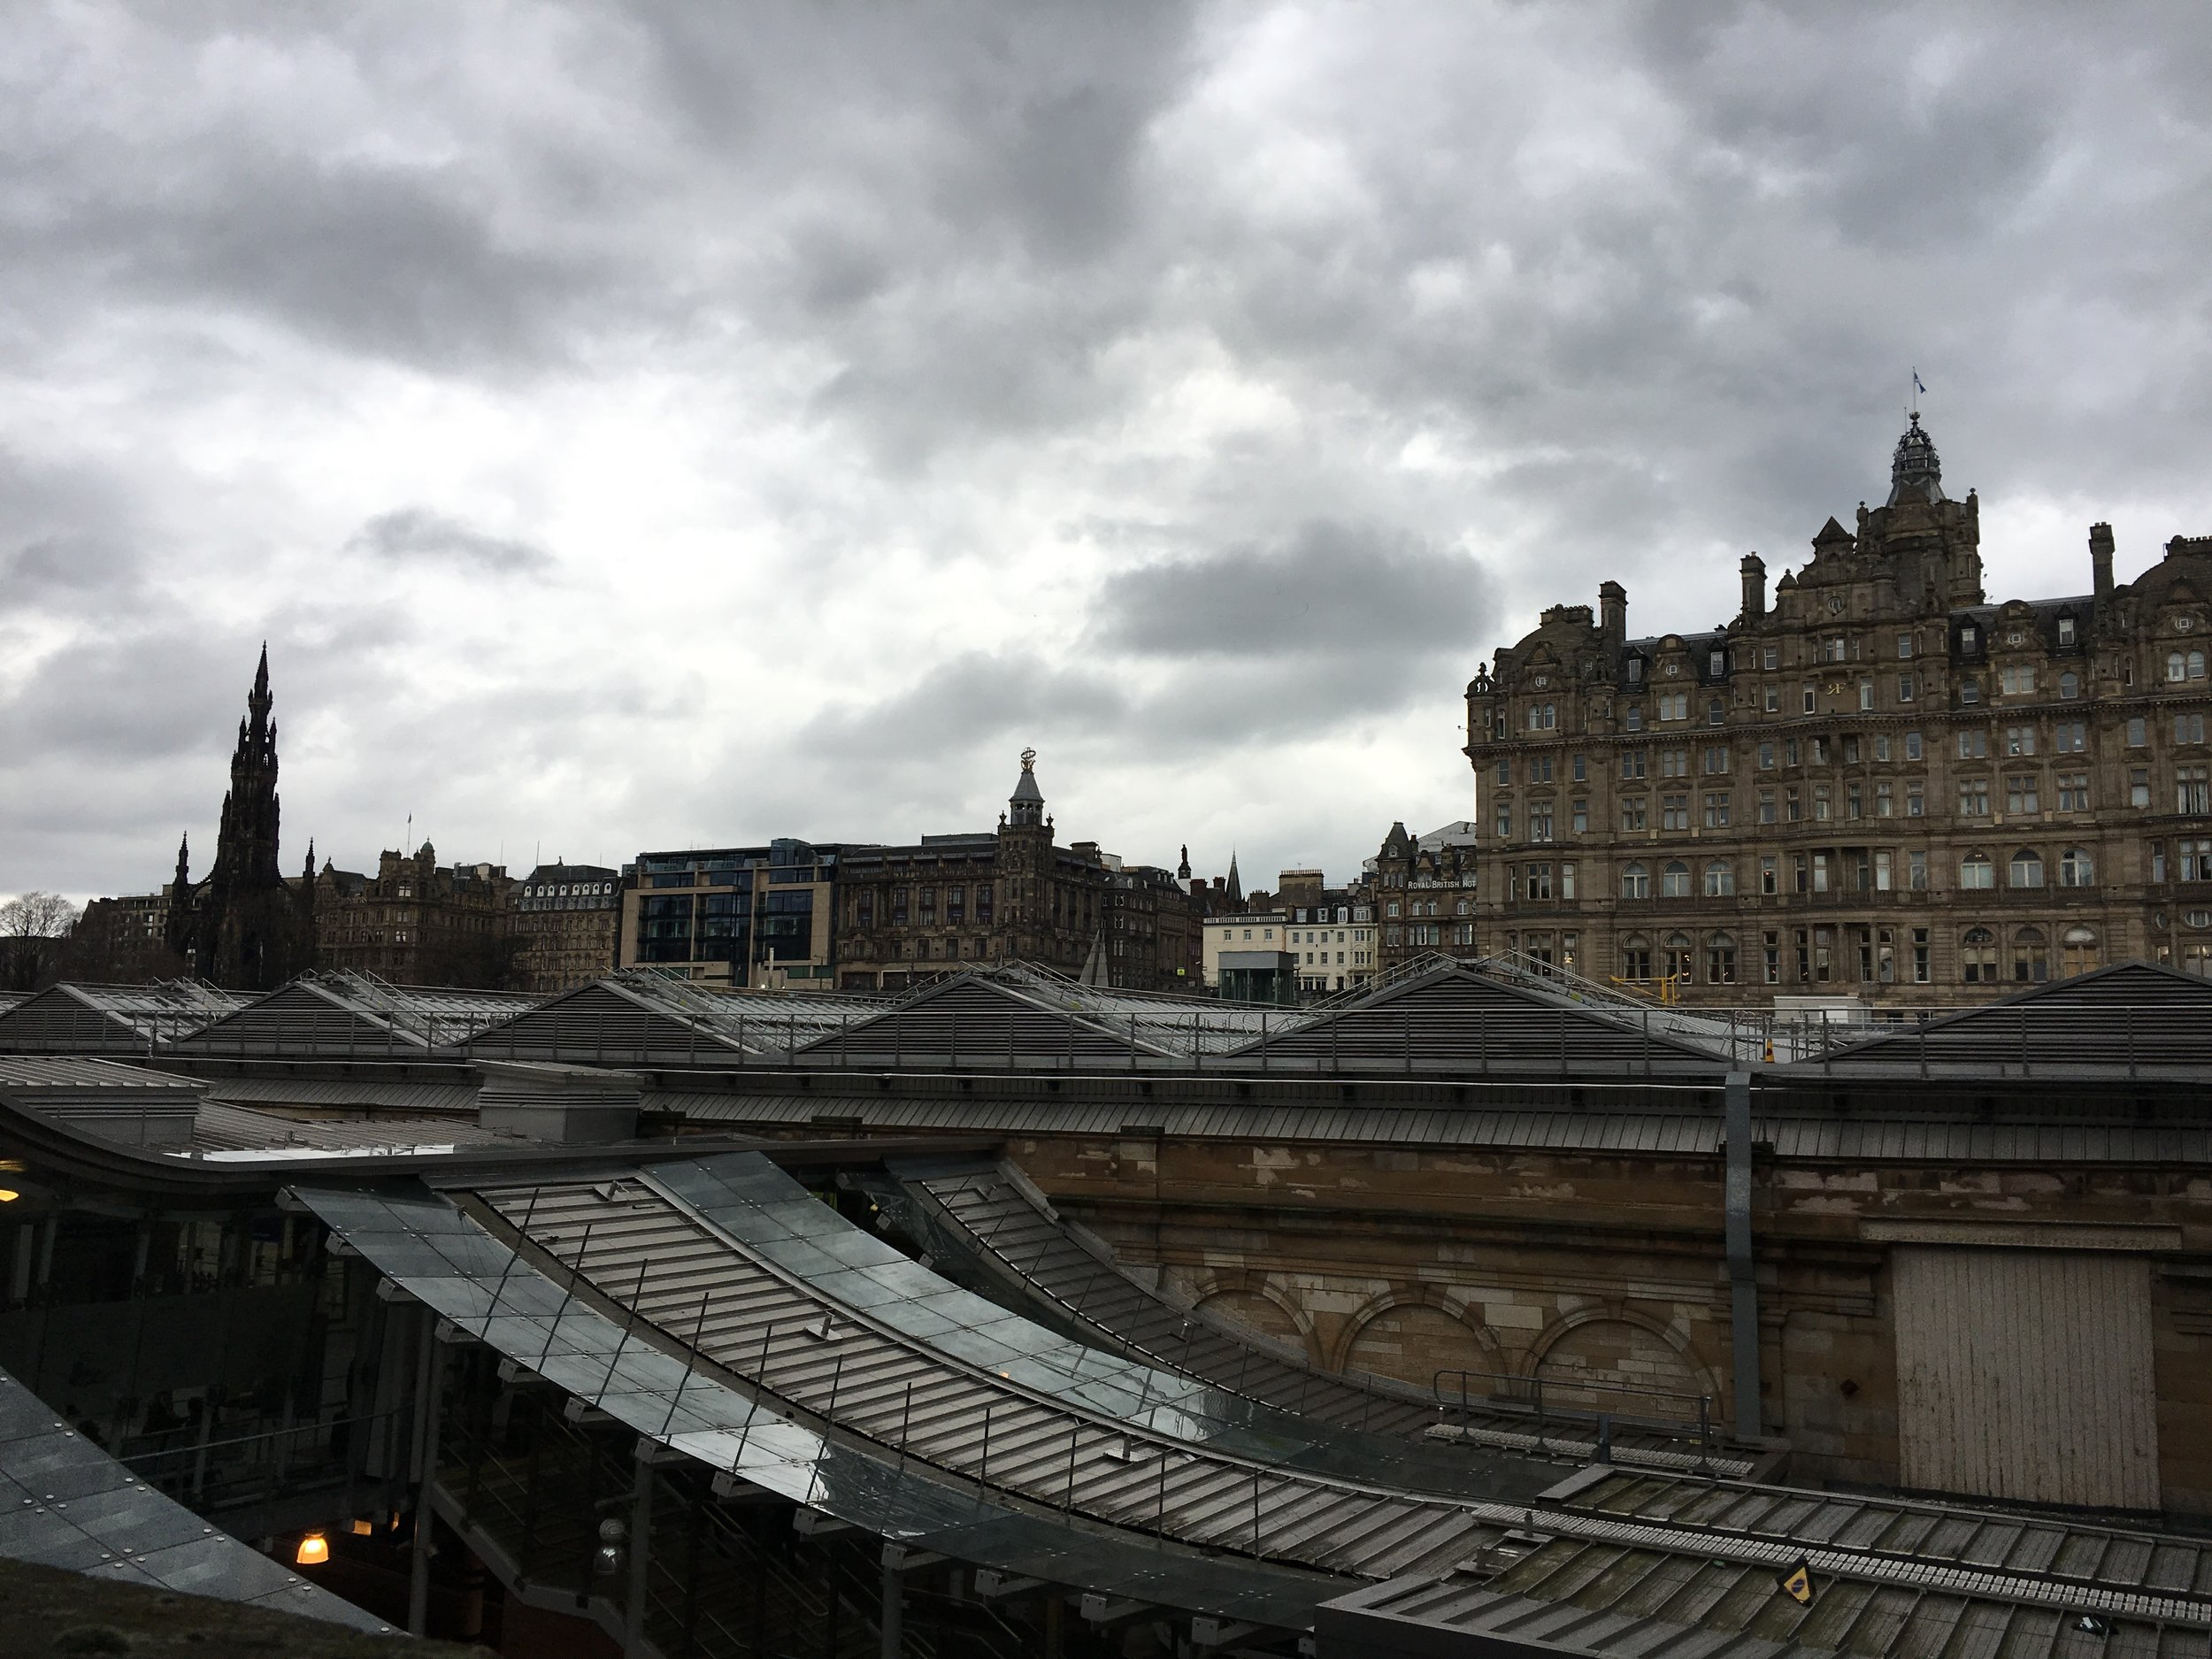 Ah, Edinburgh! We miss you already!